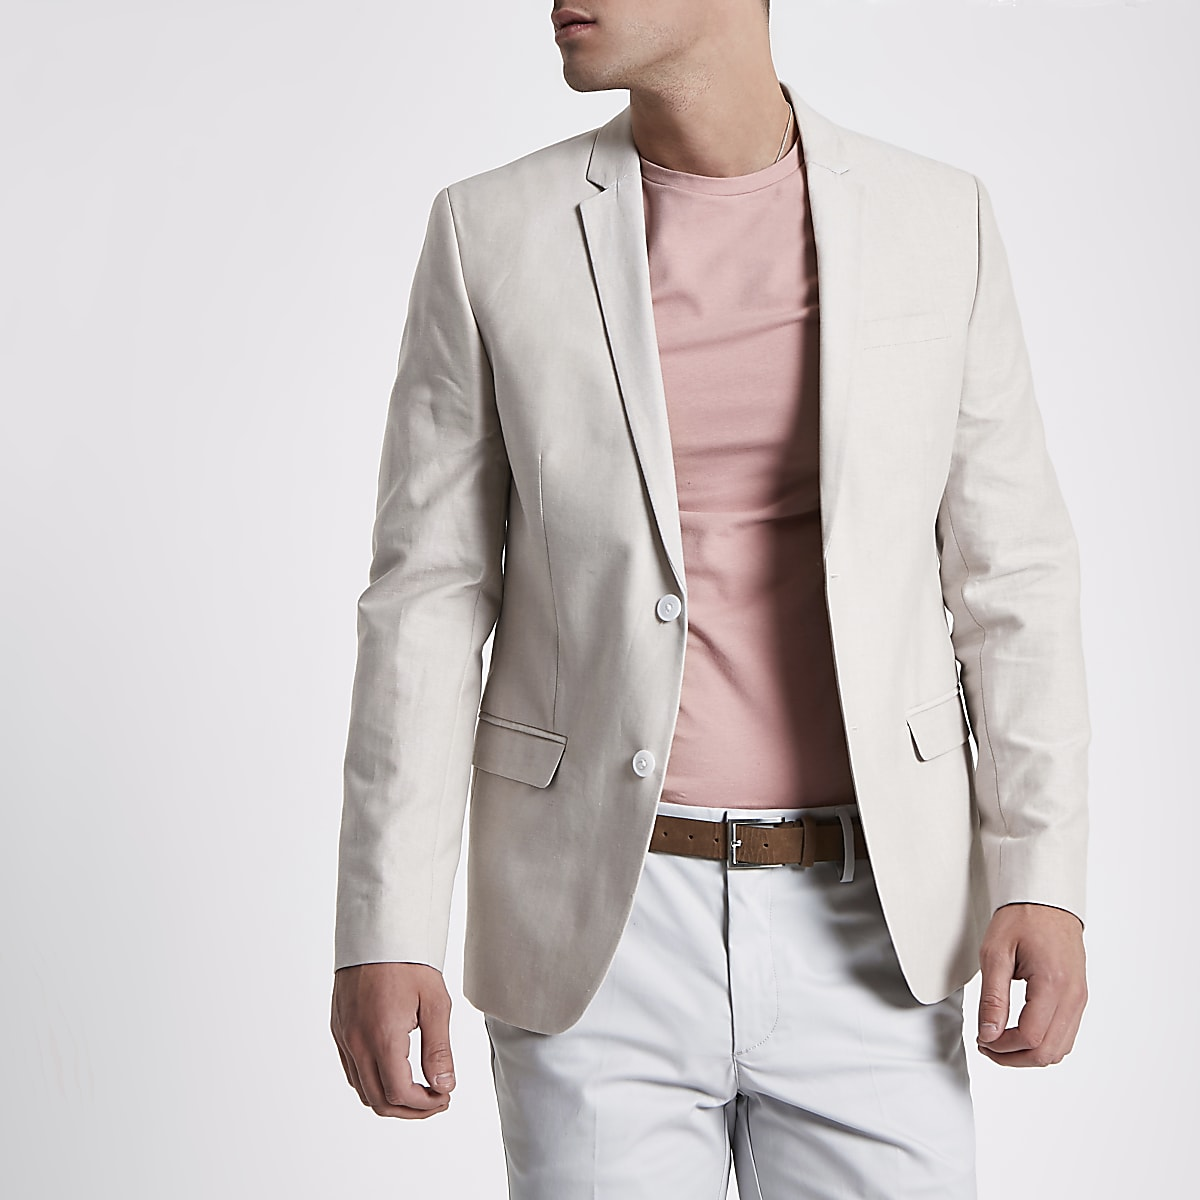 Stone skinny fit Oxford blazer